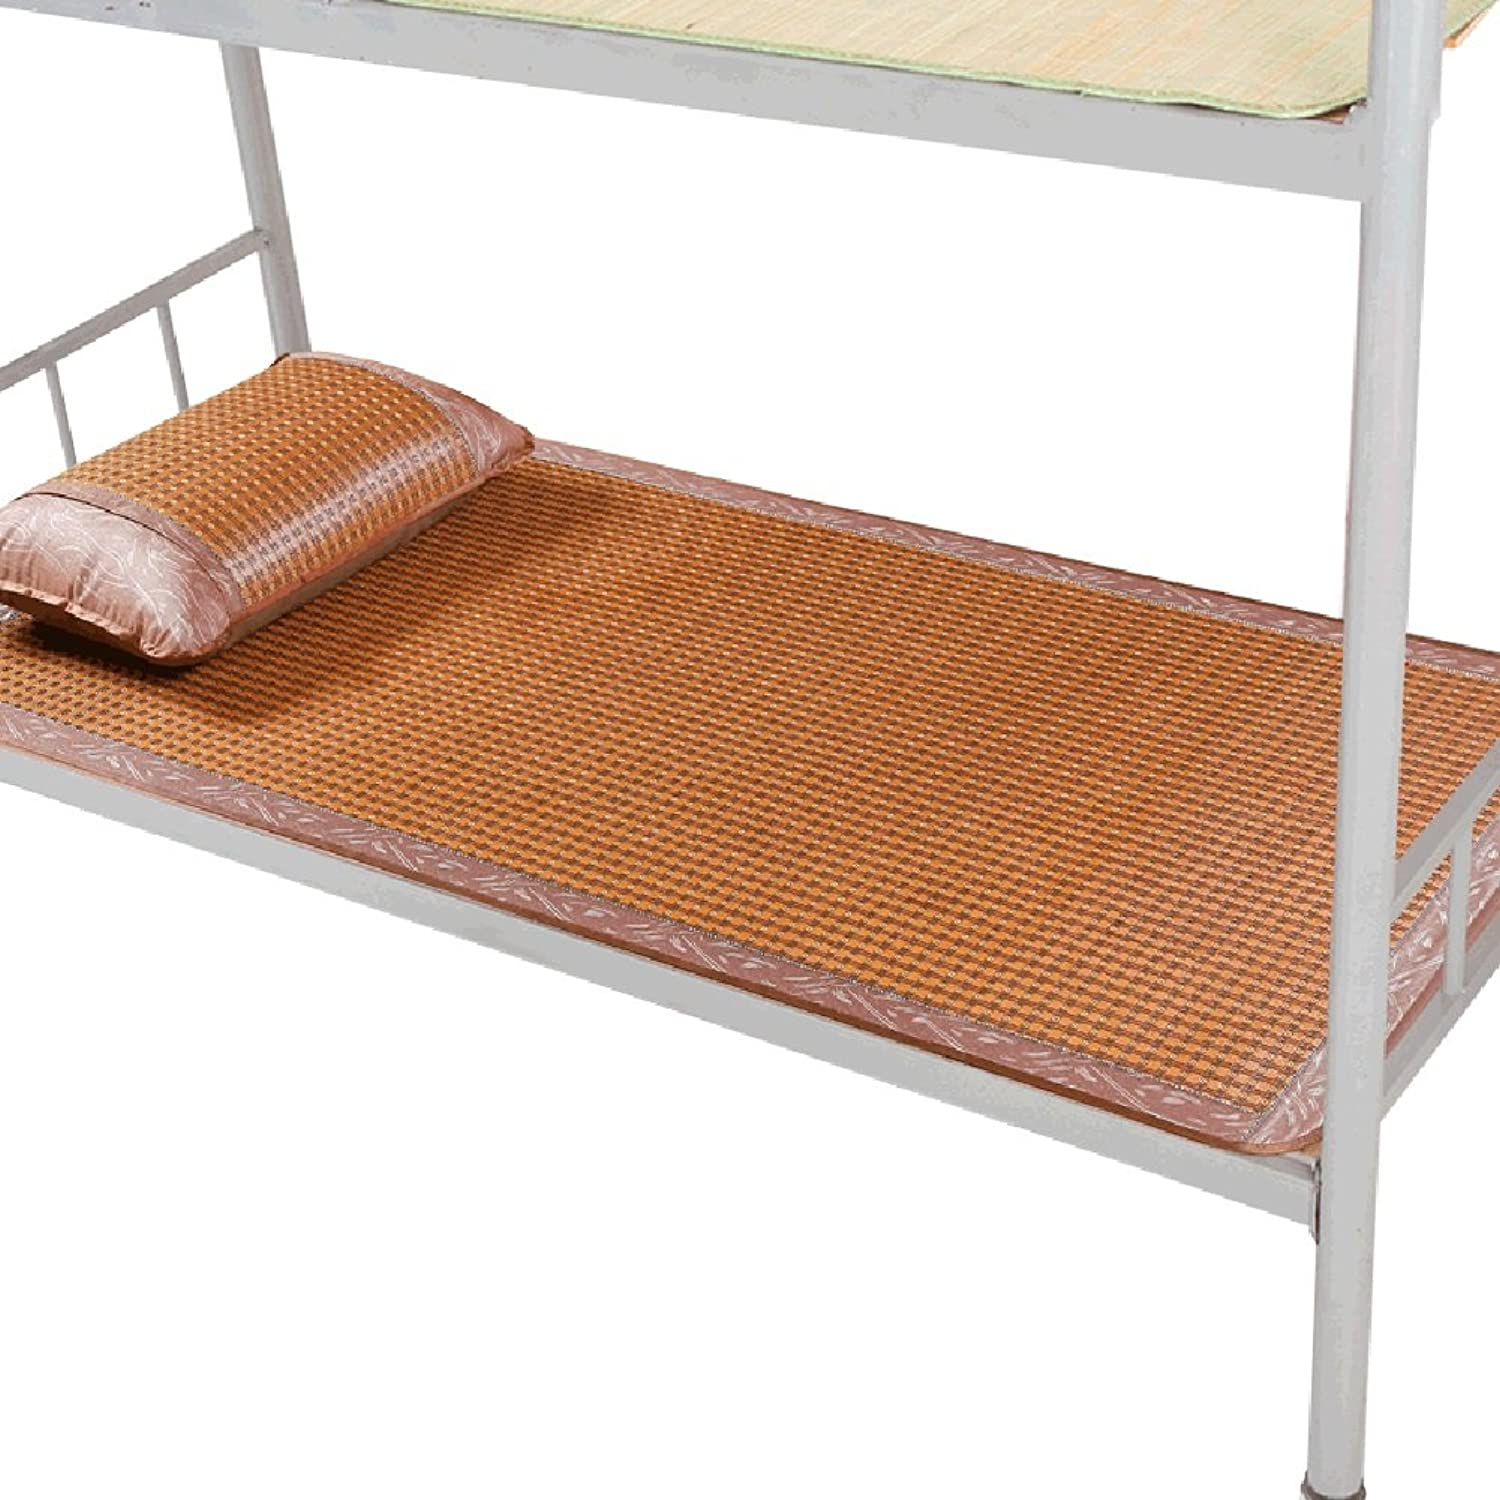 LIANGJUN Sleeping Mat Summer Mattress Rattan Grass Woven Cooling Smooth Collapsible Breathable Bedroom Student Dormitory Single Double Bed, 7 Sizes (Size   90X195cm)